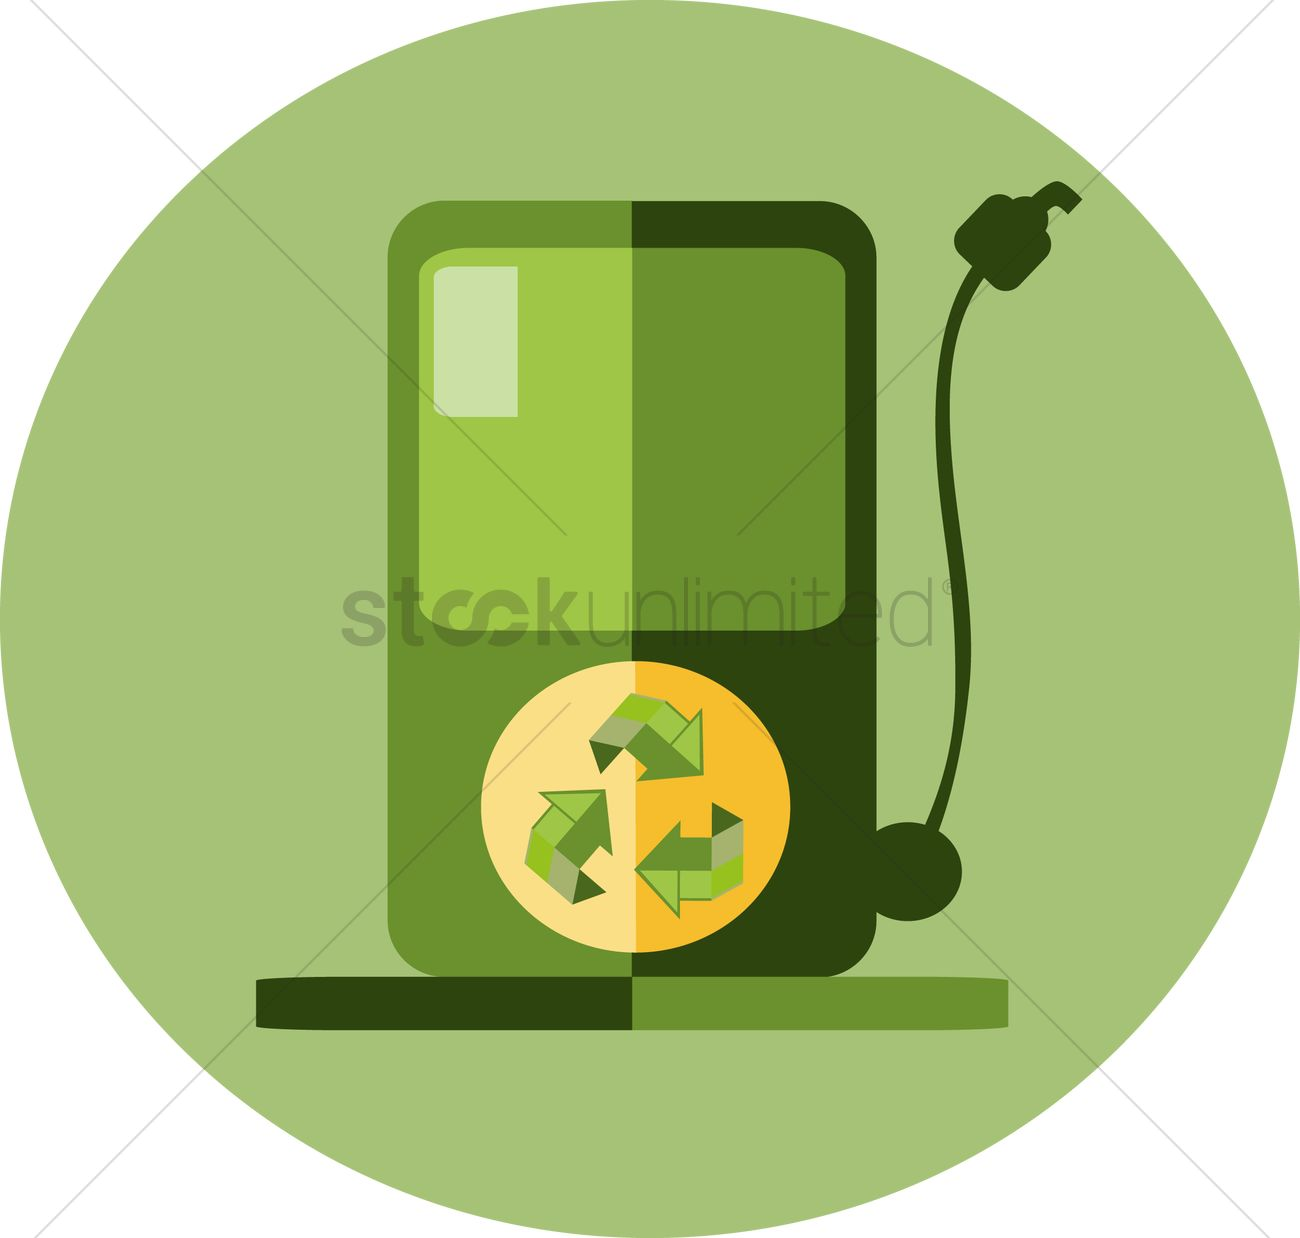 Free A Petrol Pump With Recycle Symbol Vector Image 1262043